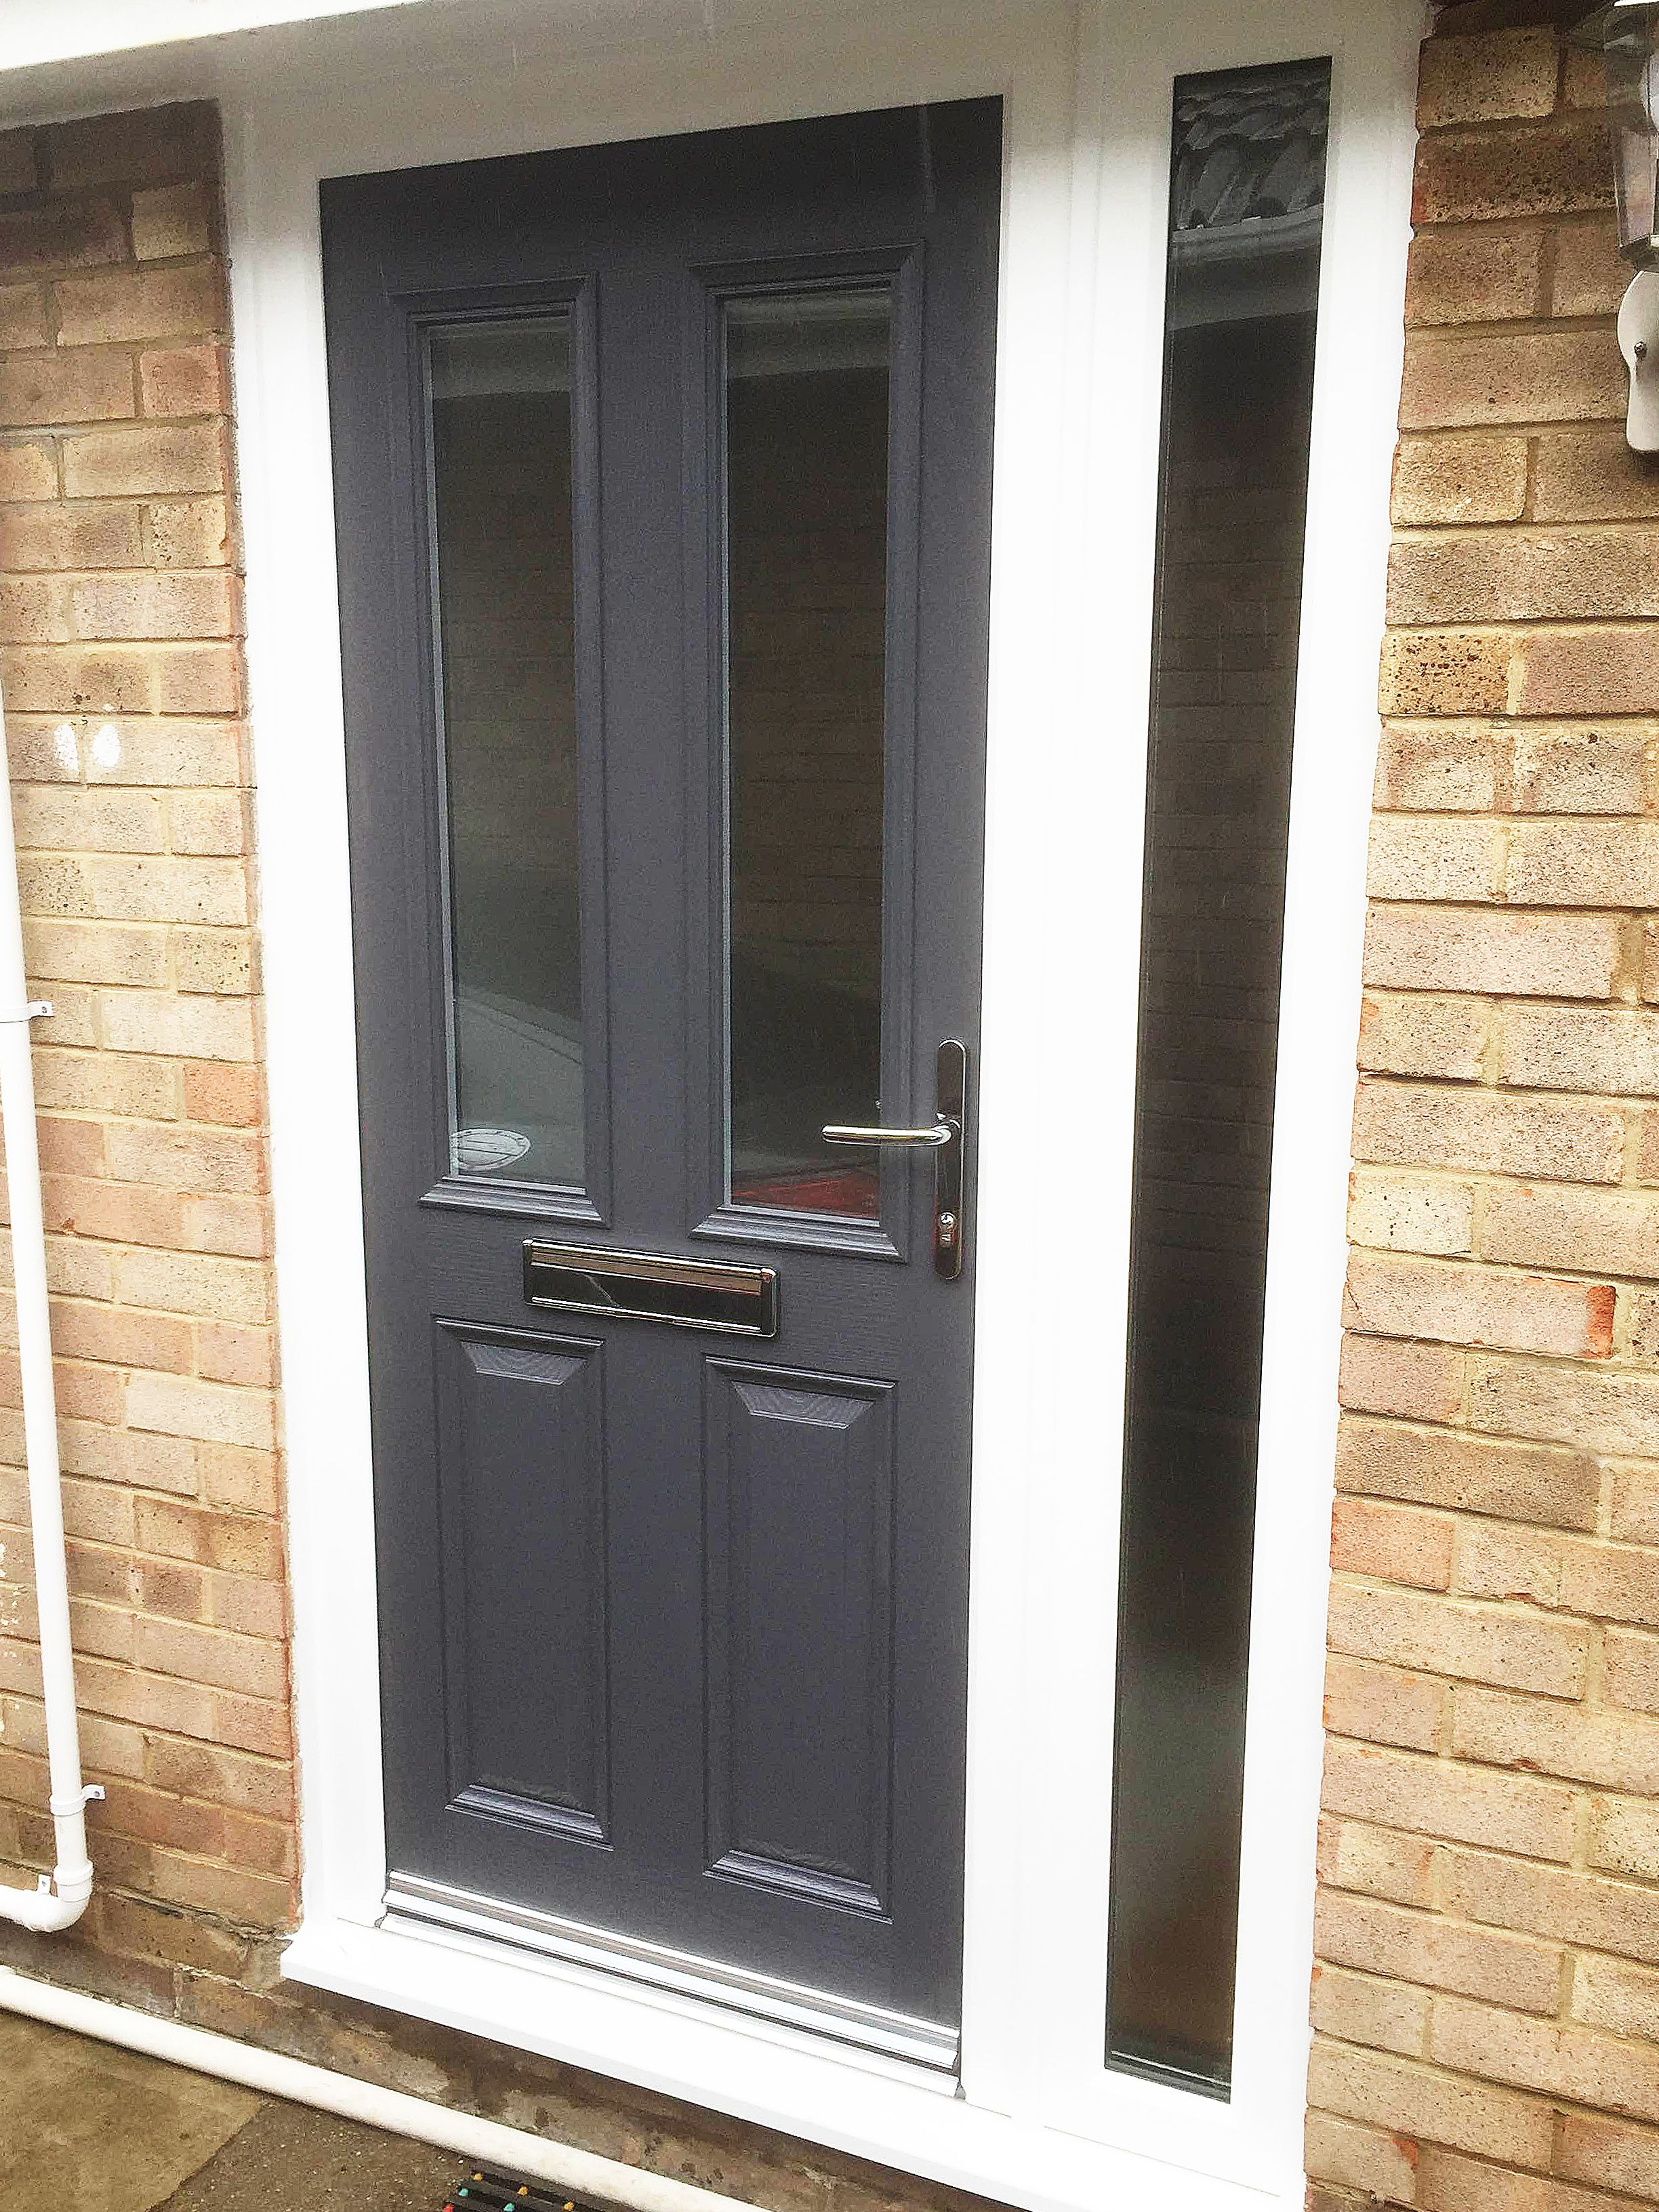 altmore composite door design with simple clear glass in a modern anthracite grey finished. Black Bedroom Furniture Sets. Home Design Ideas